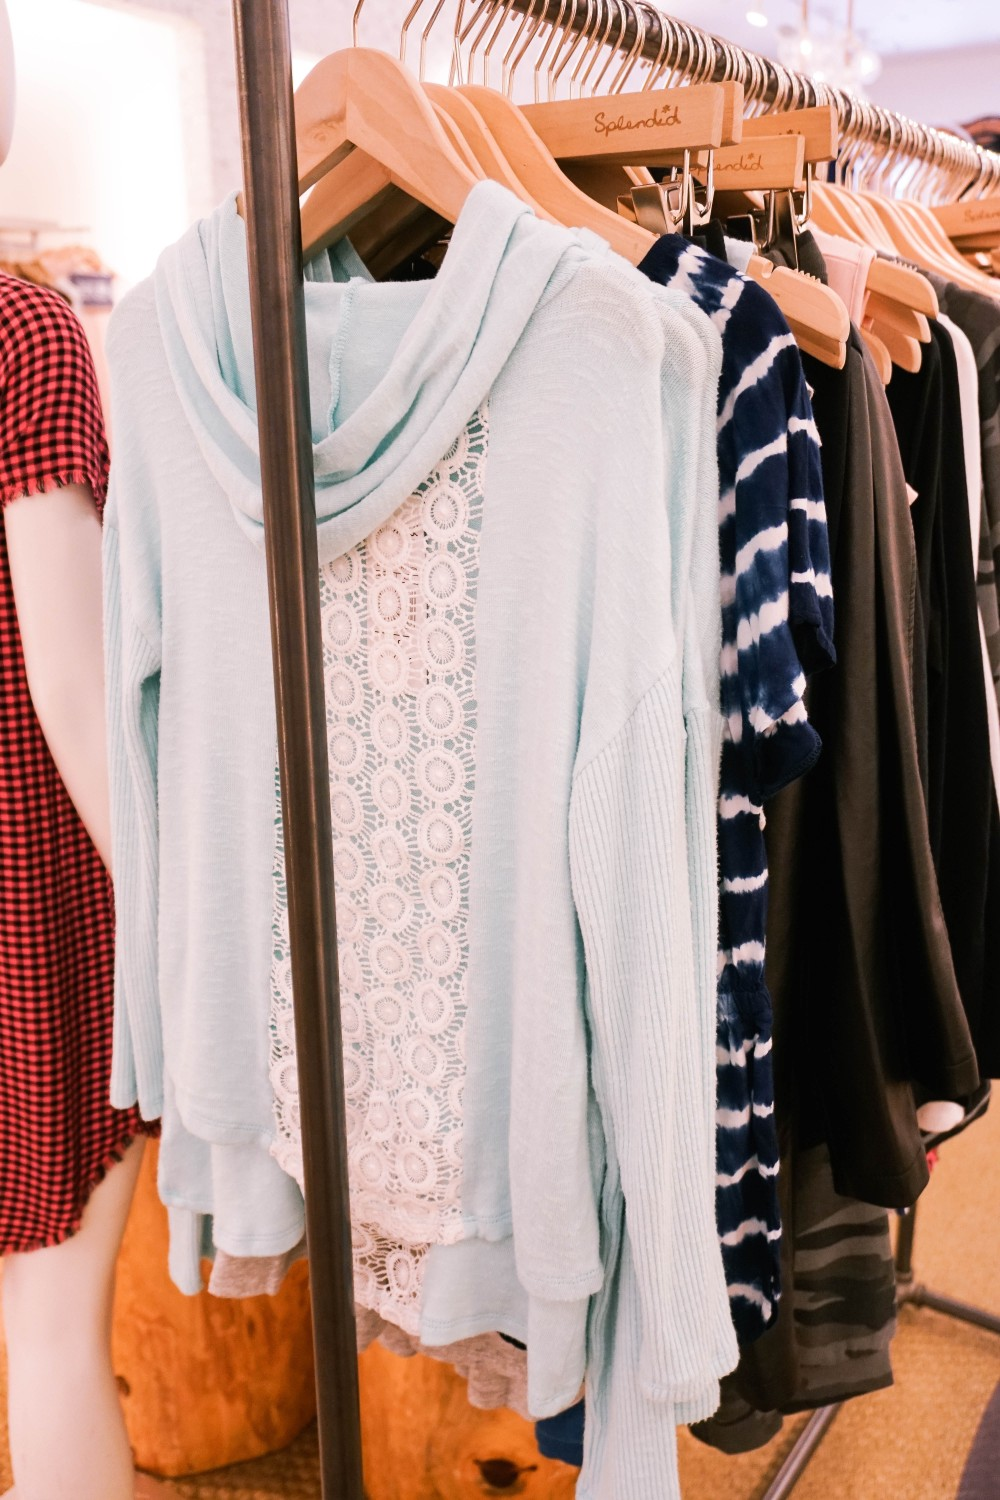 Clothing stores for college girls